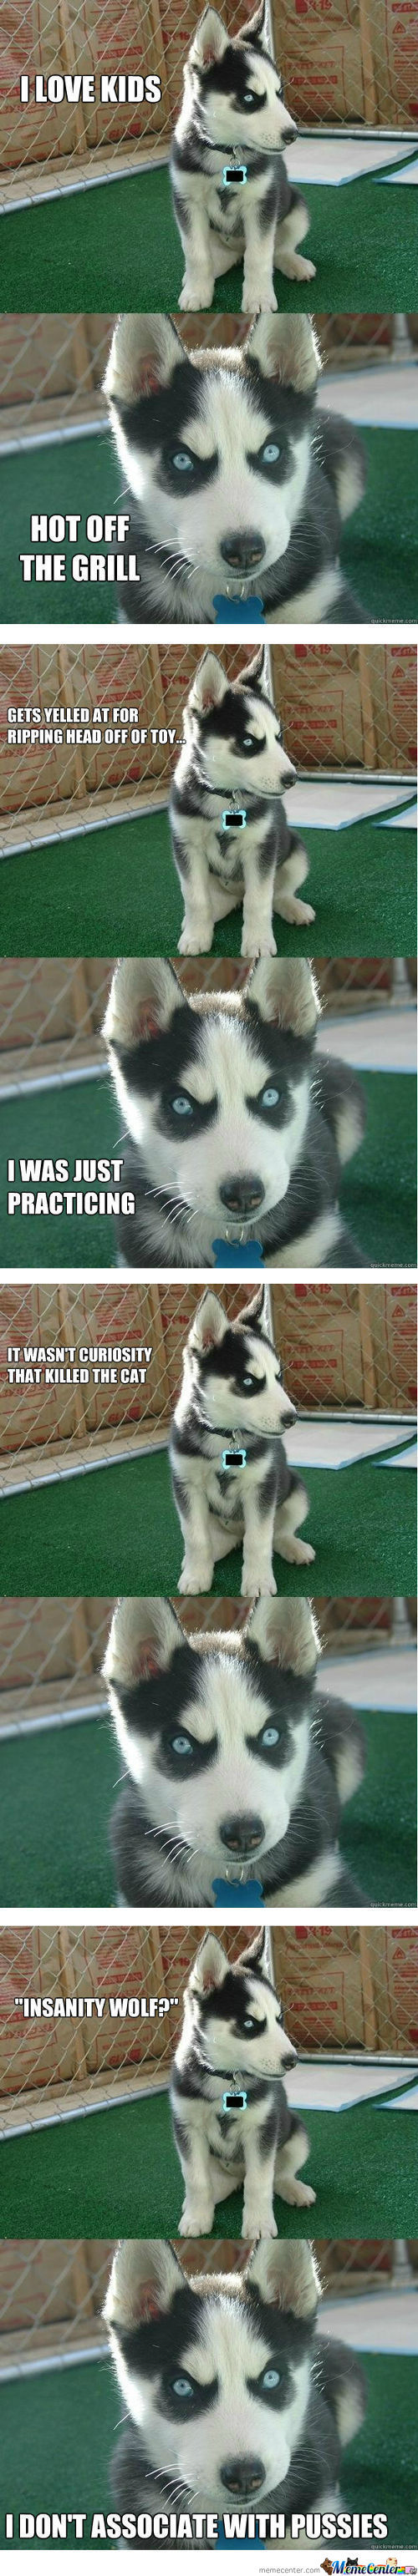 Insanity Puppy